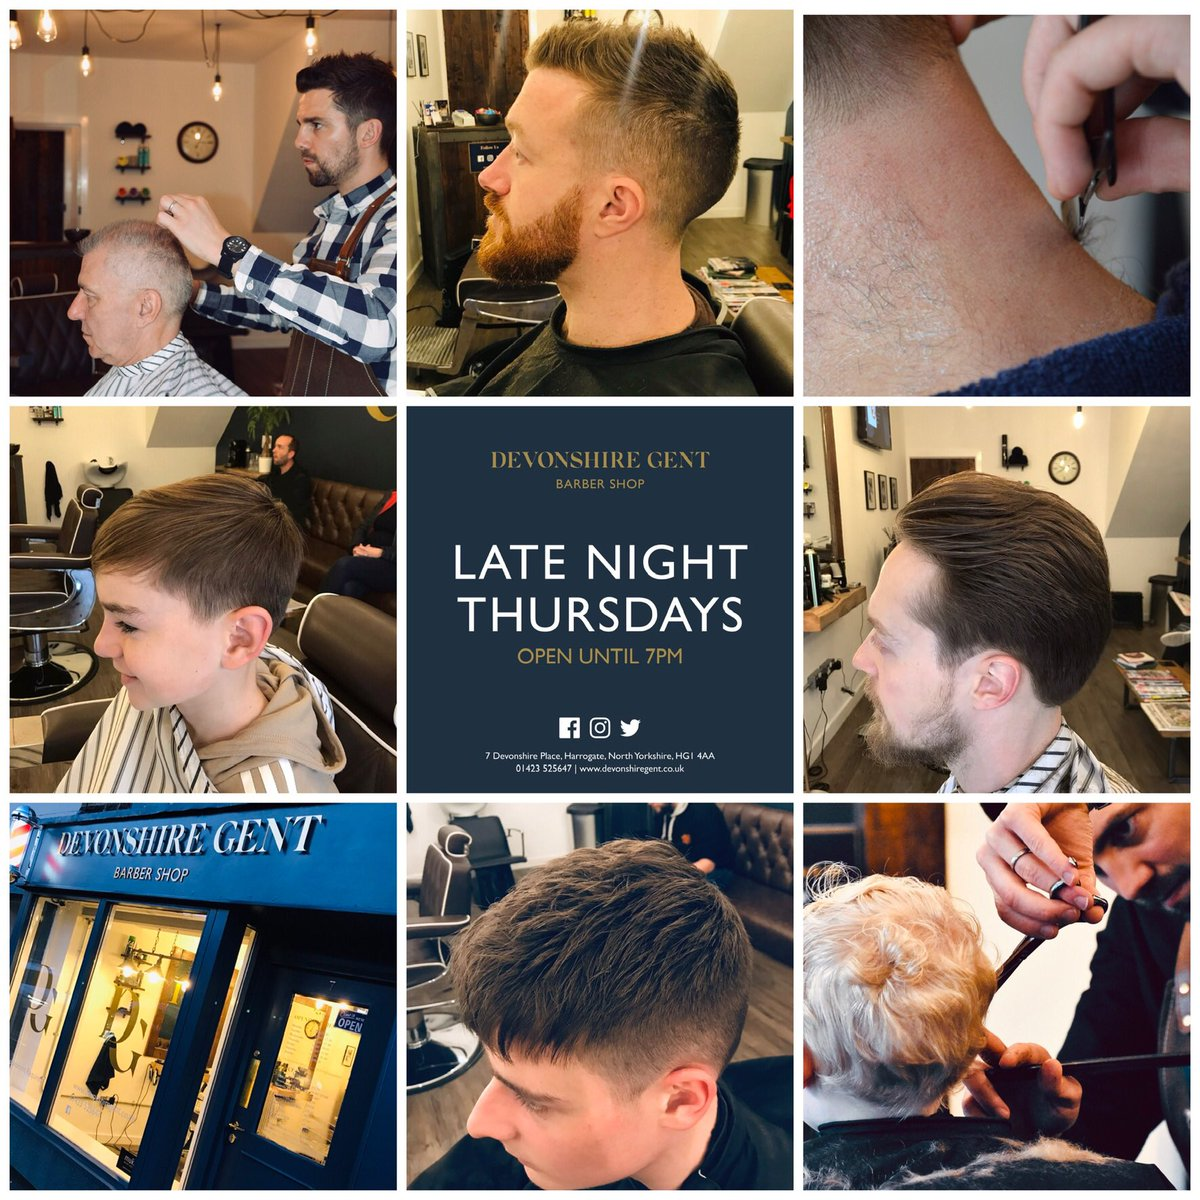 Open until 7pm tonight! Find us at Devonshire Place, HG1 4AA. Parking available opposite on Regent Parade. Visit http://www.devonshiregent.co.uk for more info on prices & services. All ages welcome! #Harrogate #barber #familybarber #localbarber #menshairpic.twitter.com/dOLHvGXCmh